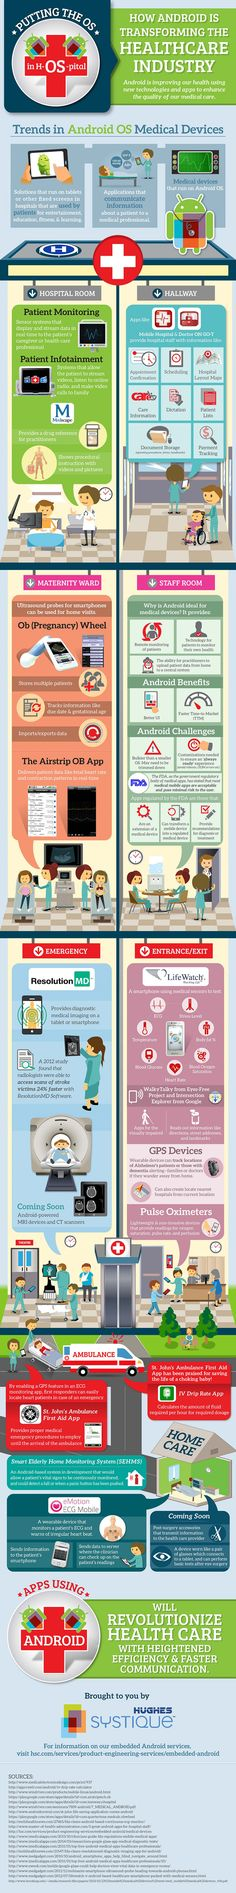 how-android-is-transforming-the-healthcare-industry infographic #digitalhealth #nhssm